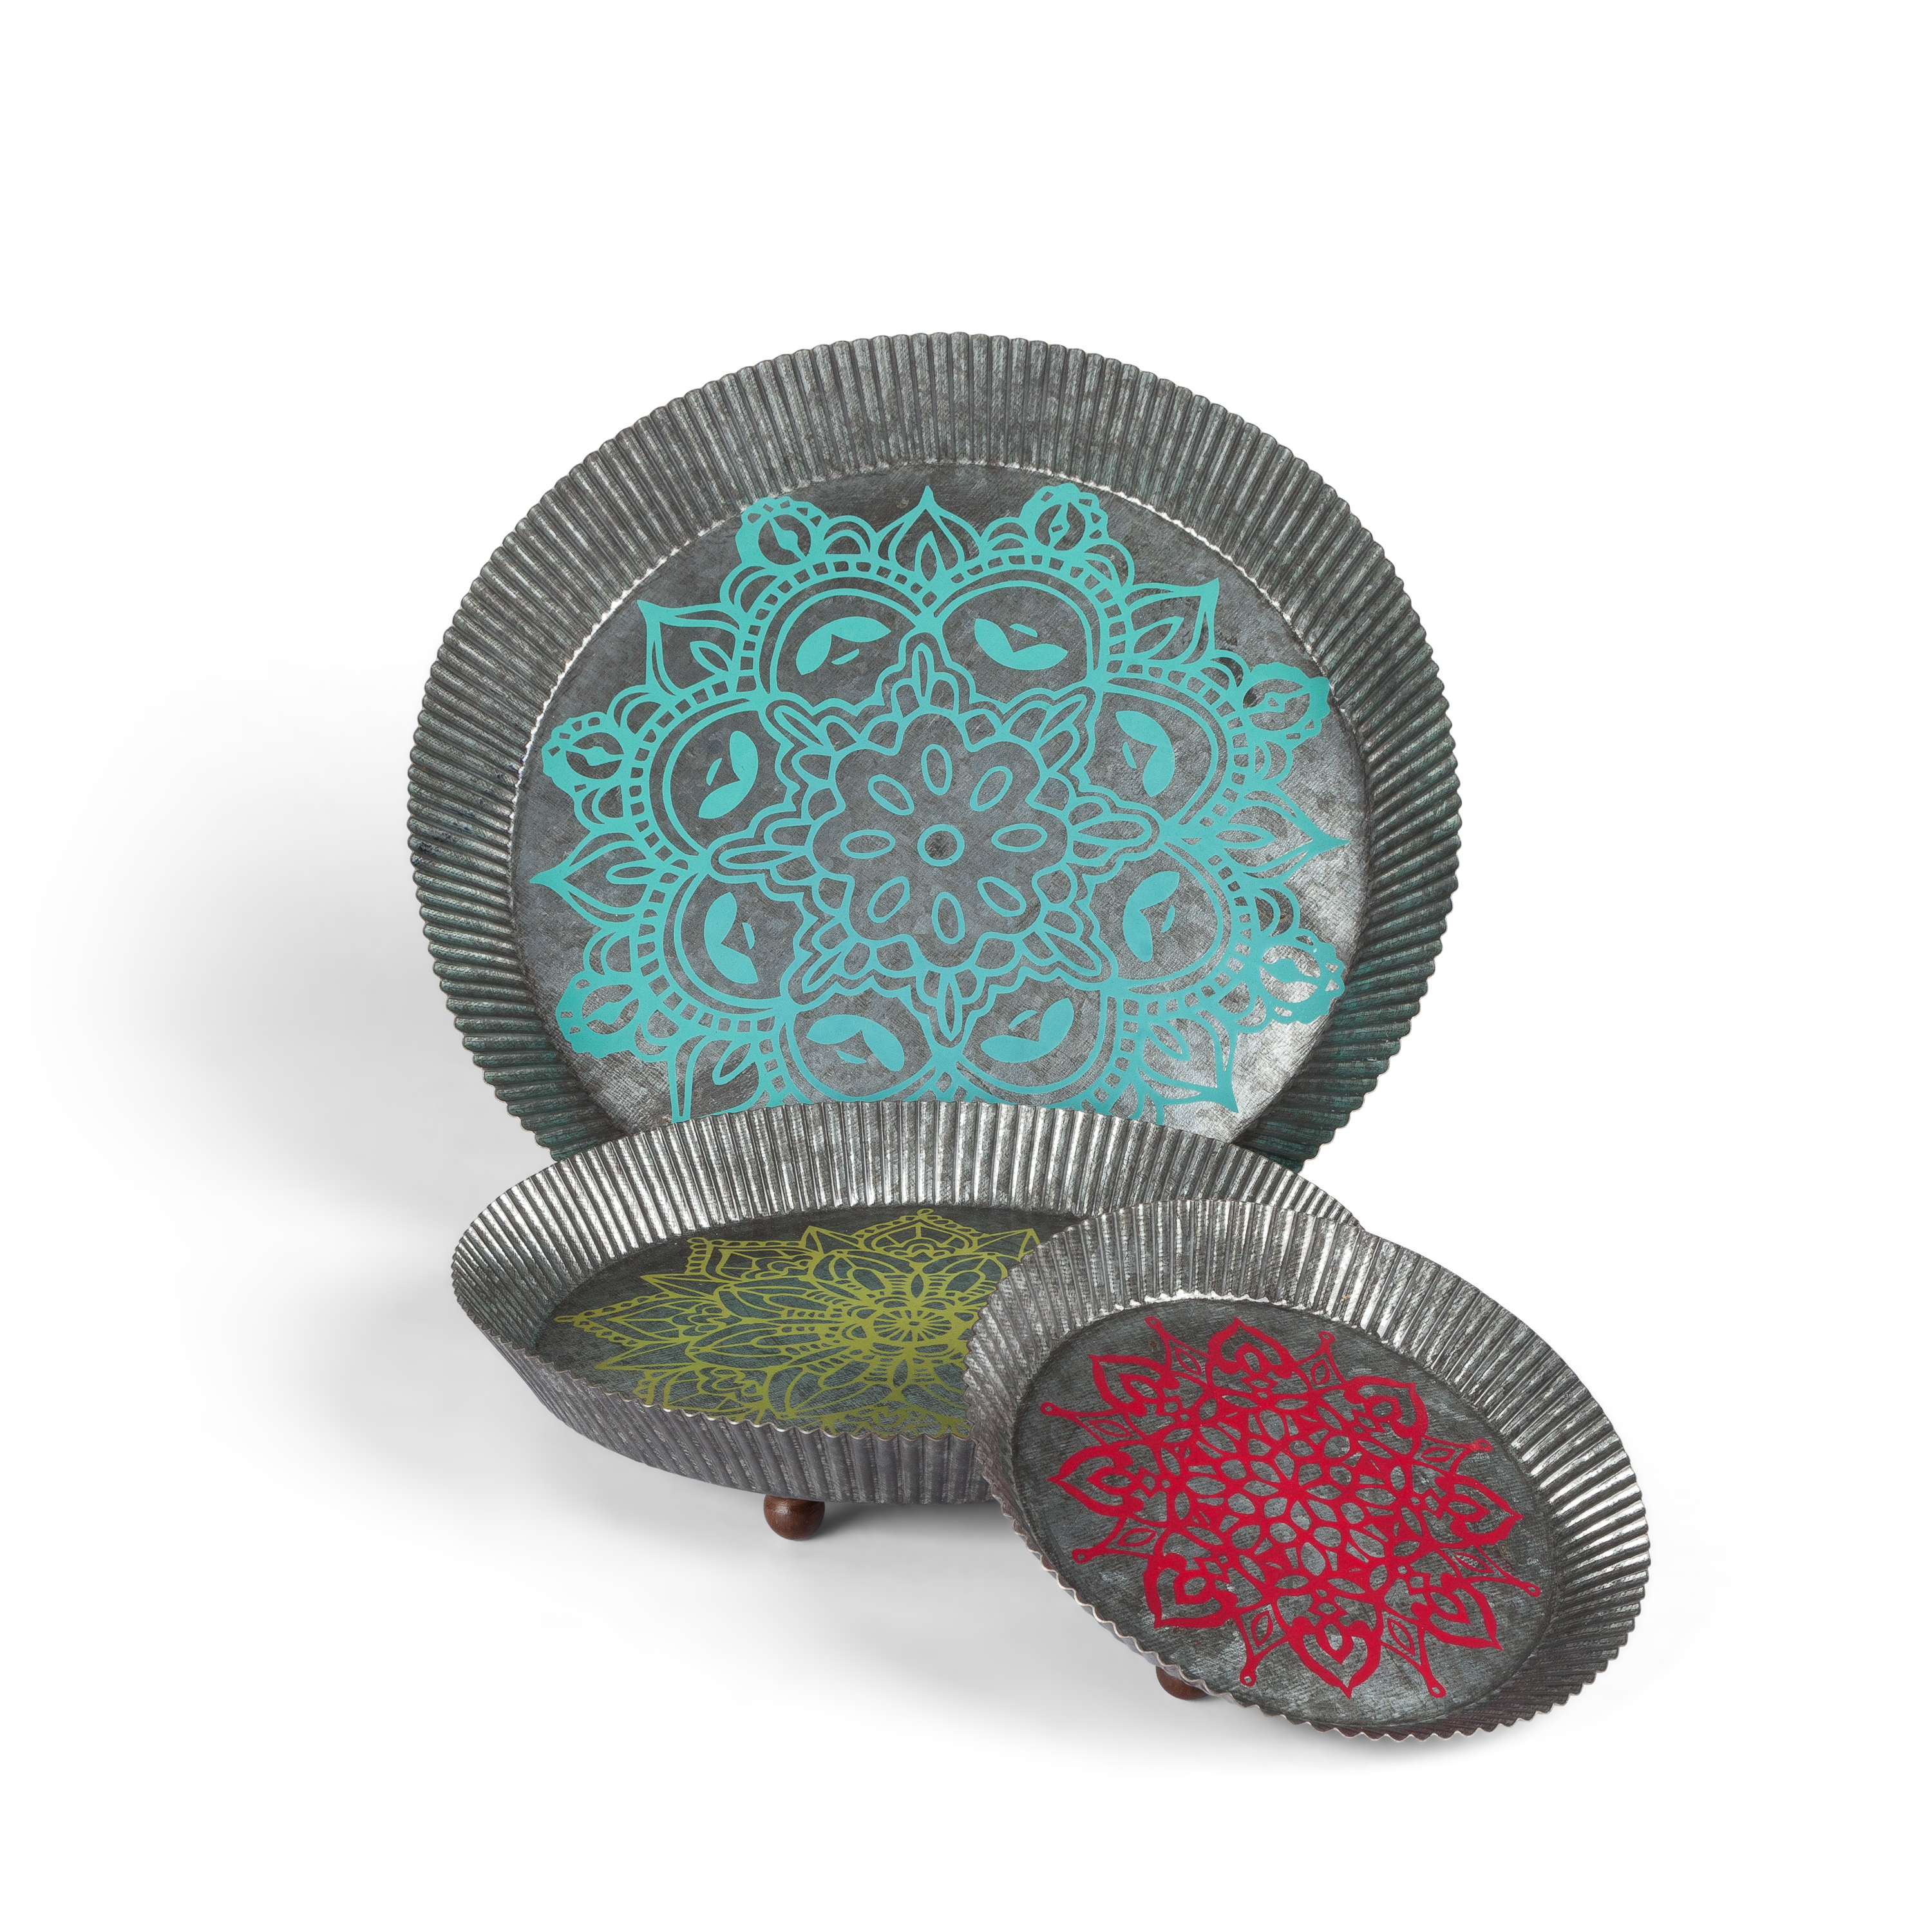 Nested, Multi-Colored, Crimped Metal Mandala Trays with Wooden Knob Feet in Assorted Sizes (Set of 3)